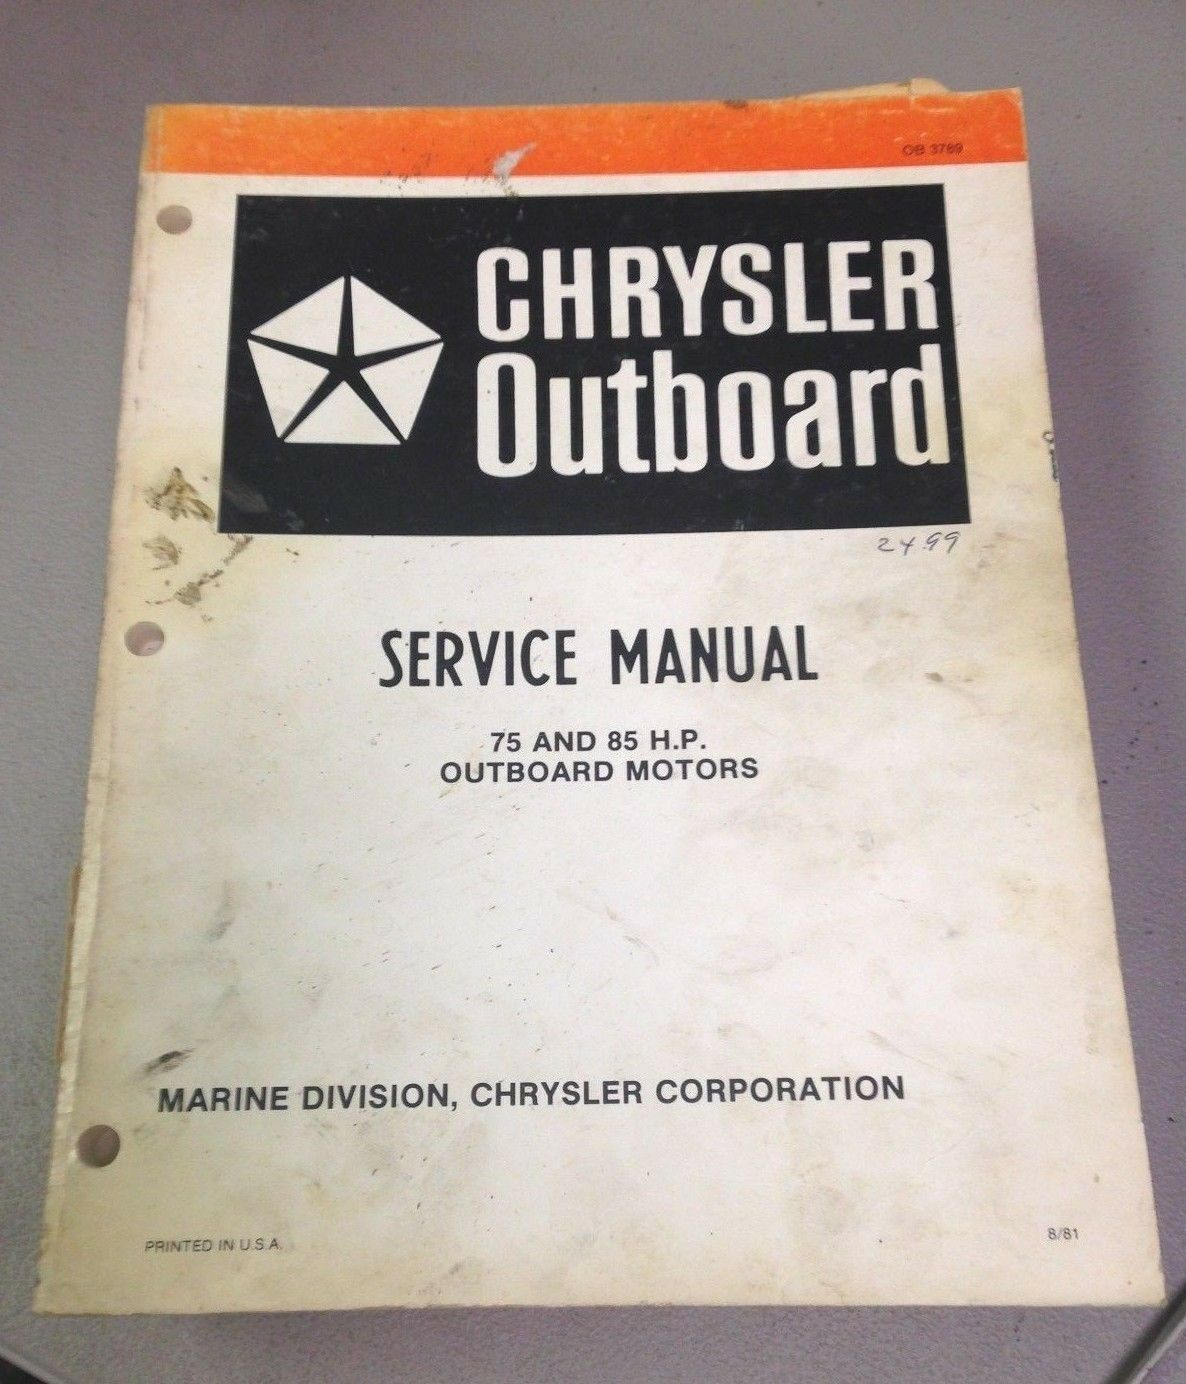 USED CHRYSLER MARINE SERVICE MANUAL, 75 AND 85 H.P. OUTBOARD MOTORS, OB3789